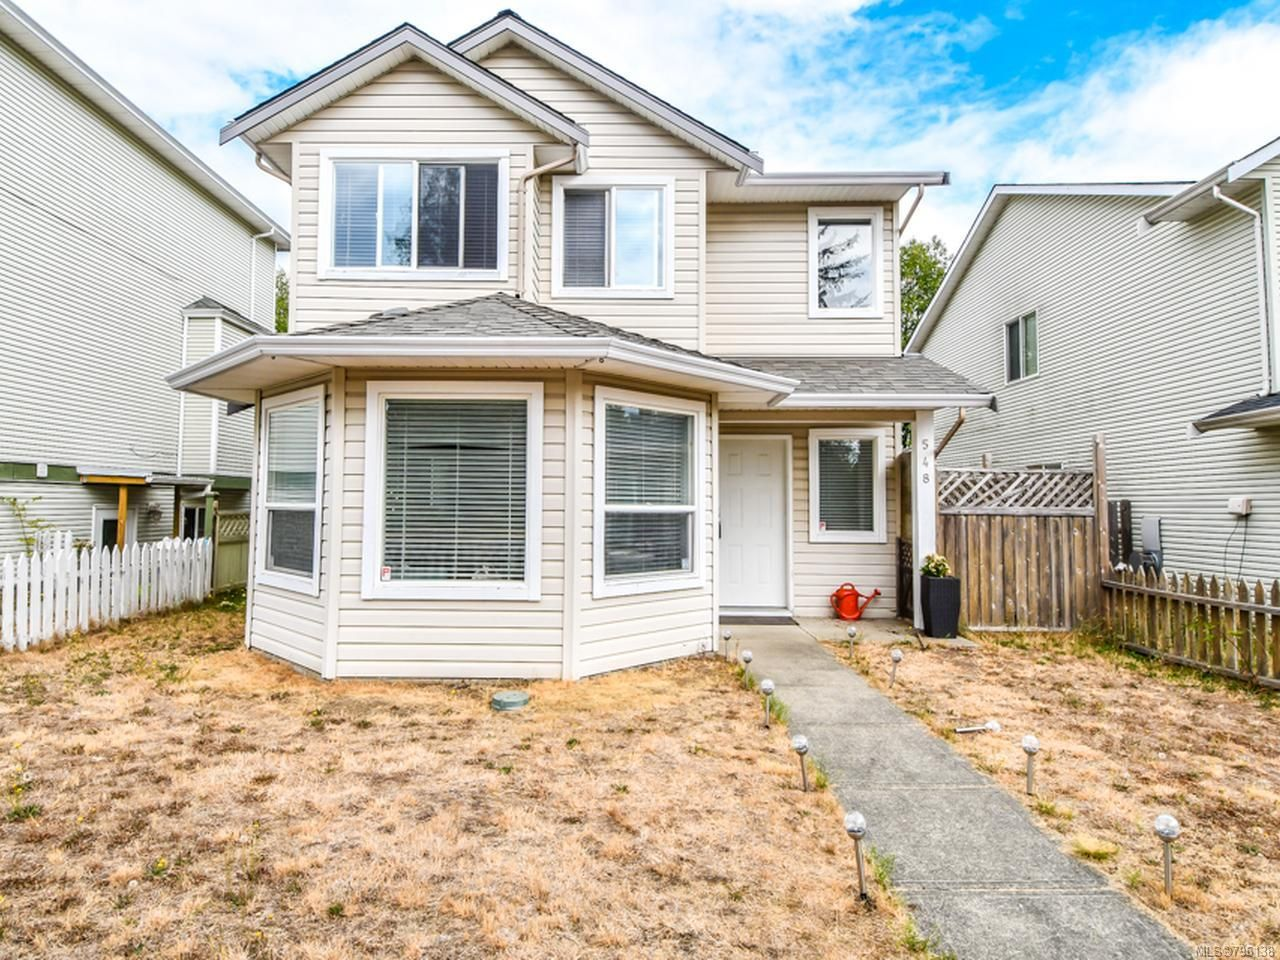 Main Photo: 548 HILCHEY ROAD in CAMPBELL RIVER: CR Willow Point House for sale (Campbell River)  : MLS®# 796138